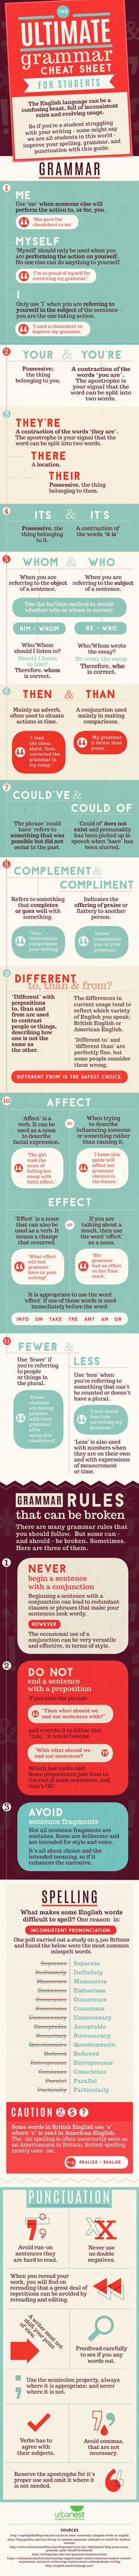 The Ultimate English Grammar Cheat Sheet For Students #infographic #Education #Grammar